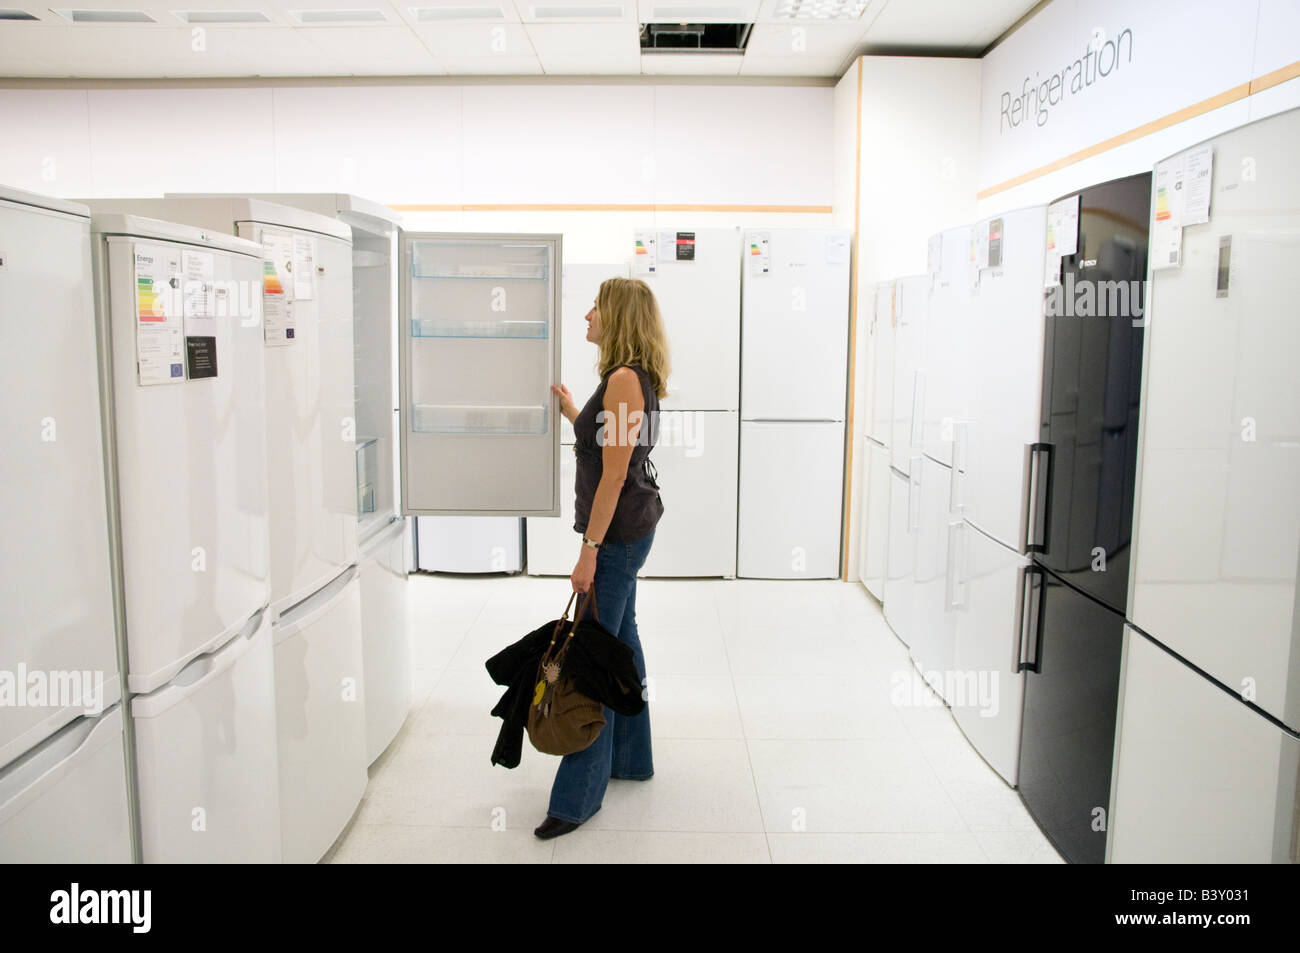 Woman buying a new refrigerator at John Lewis, London, England UK Stock Photo